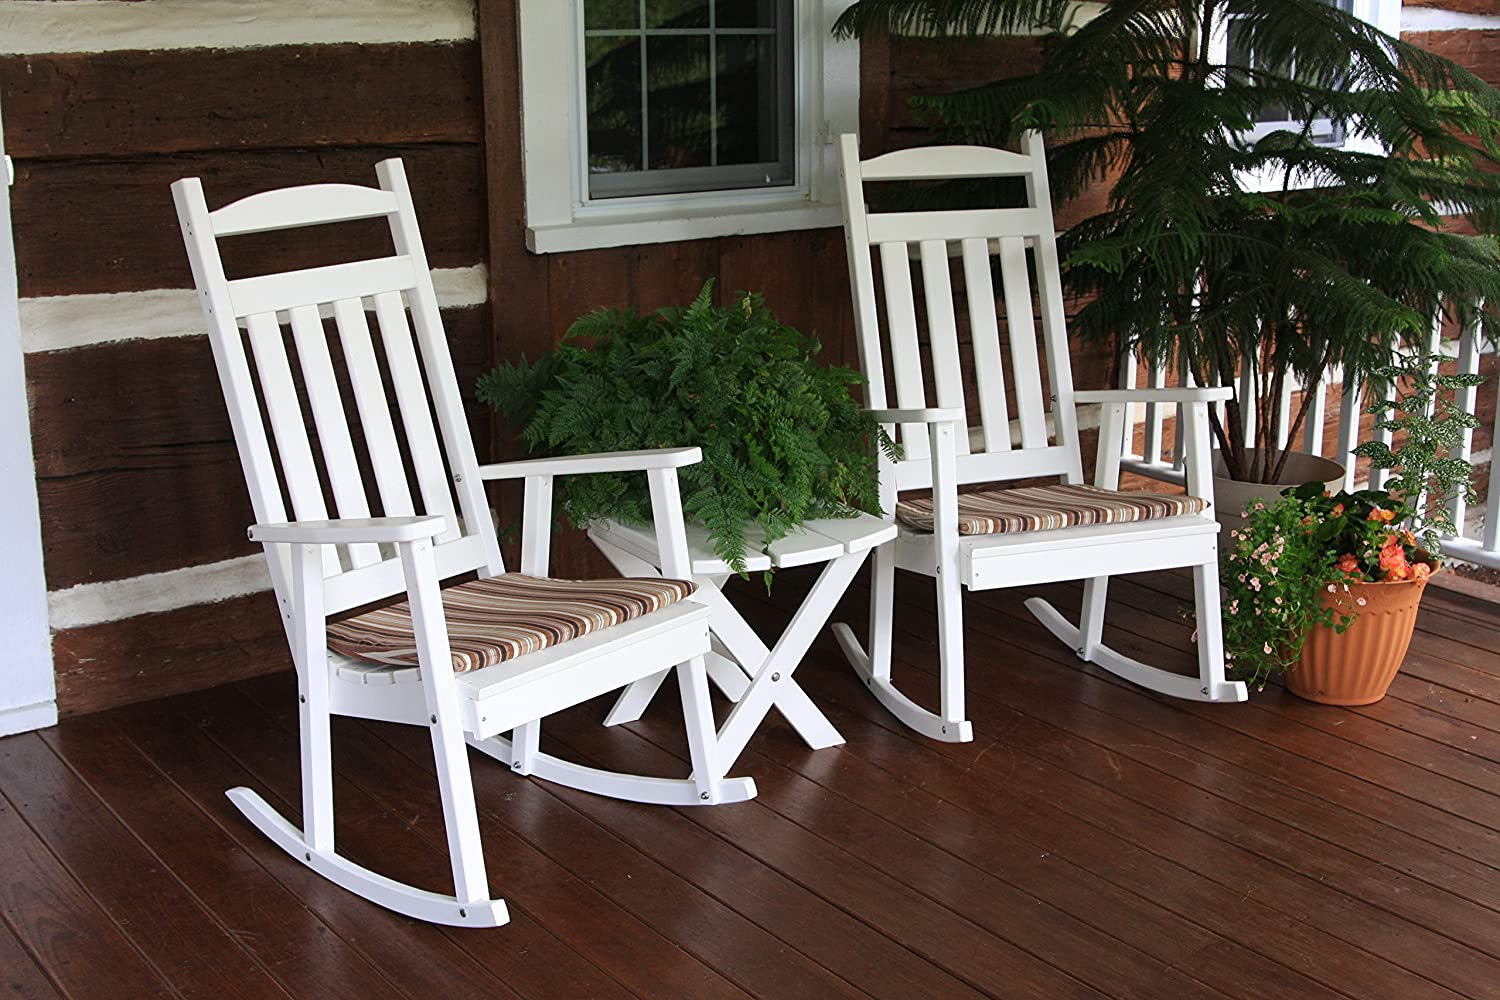 Amish outdoor rocking chairs - Amazon Com Outdoor Poly Classic Rocking Chair Amish Made Usa Bright White Kitchen Dining